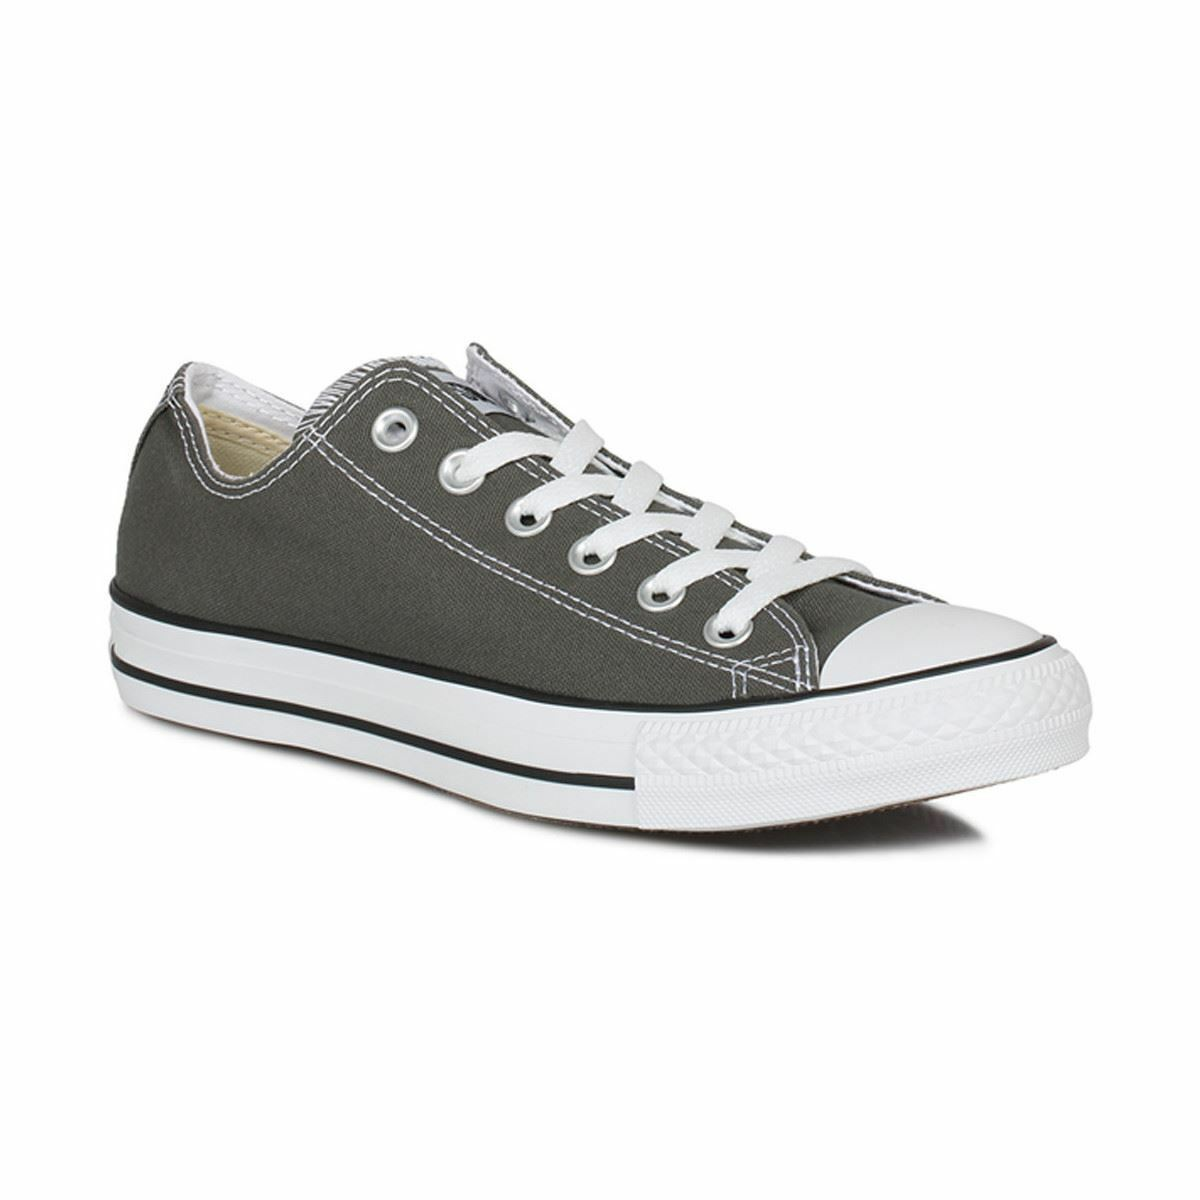 Converse All Star UK 5 EU 37.5 Sneaker Unisex Charcoal Canvas 1J794C Sneaker 37.5 Trainers 2115d7